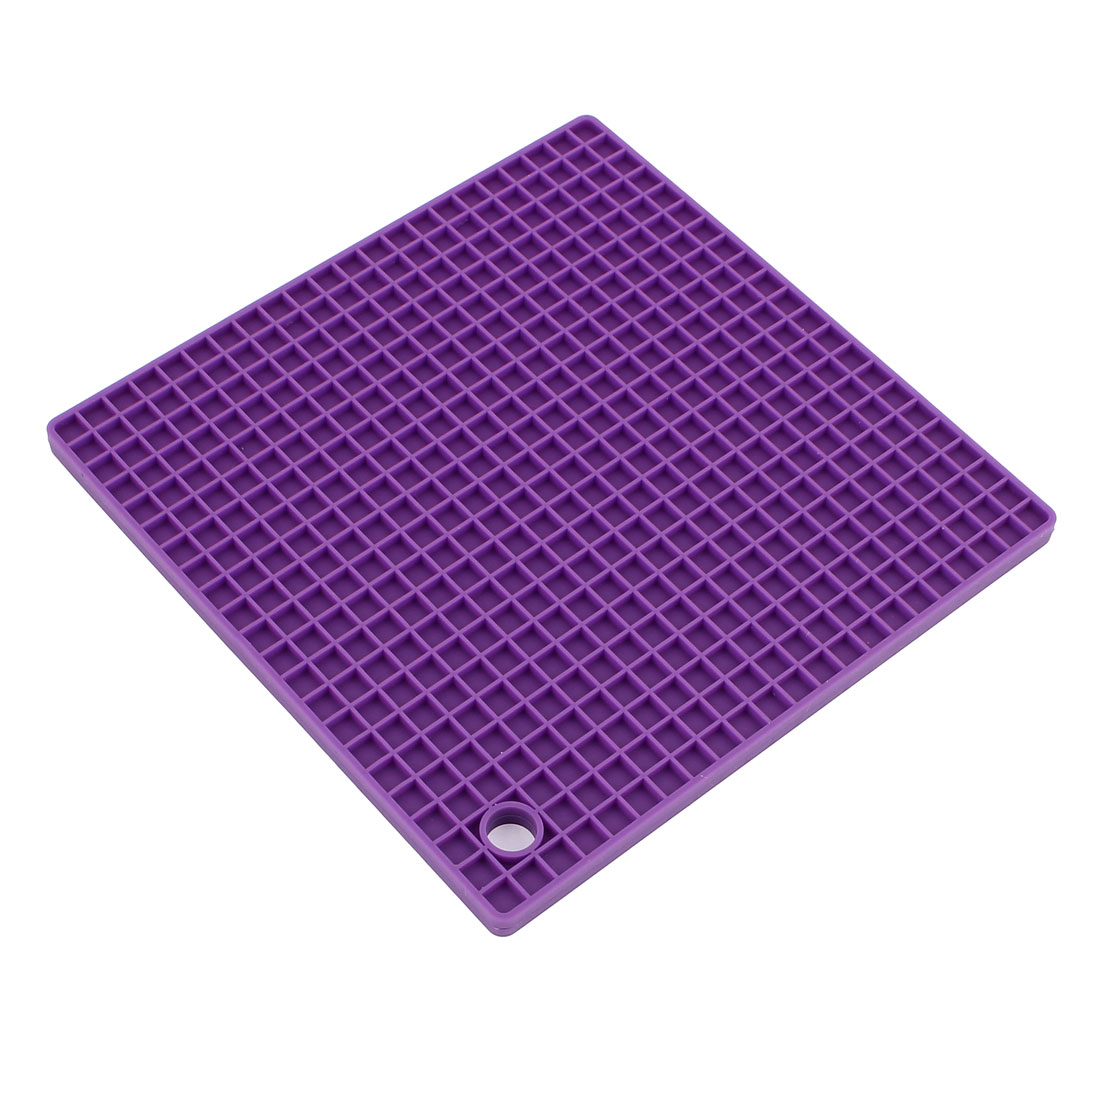 Silicone Square Shaped Antislip Bowl Cup Heat Resistant Pad Mat Purple